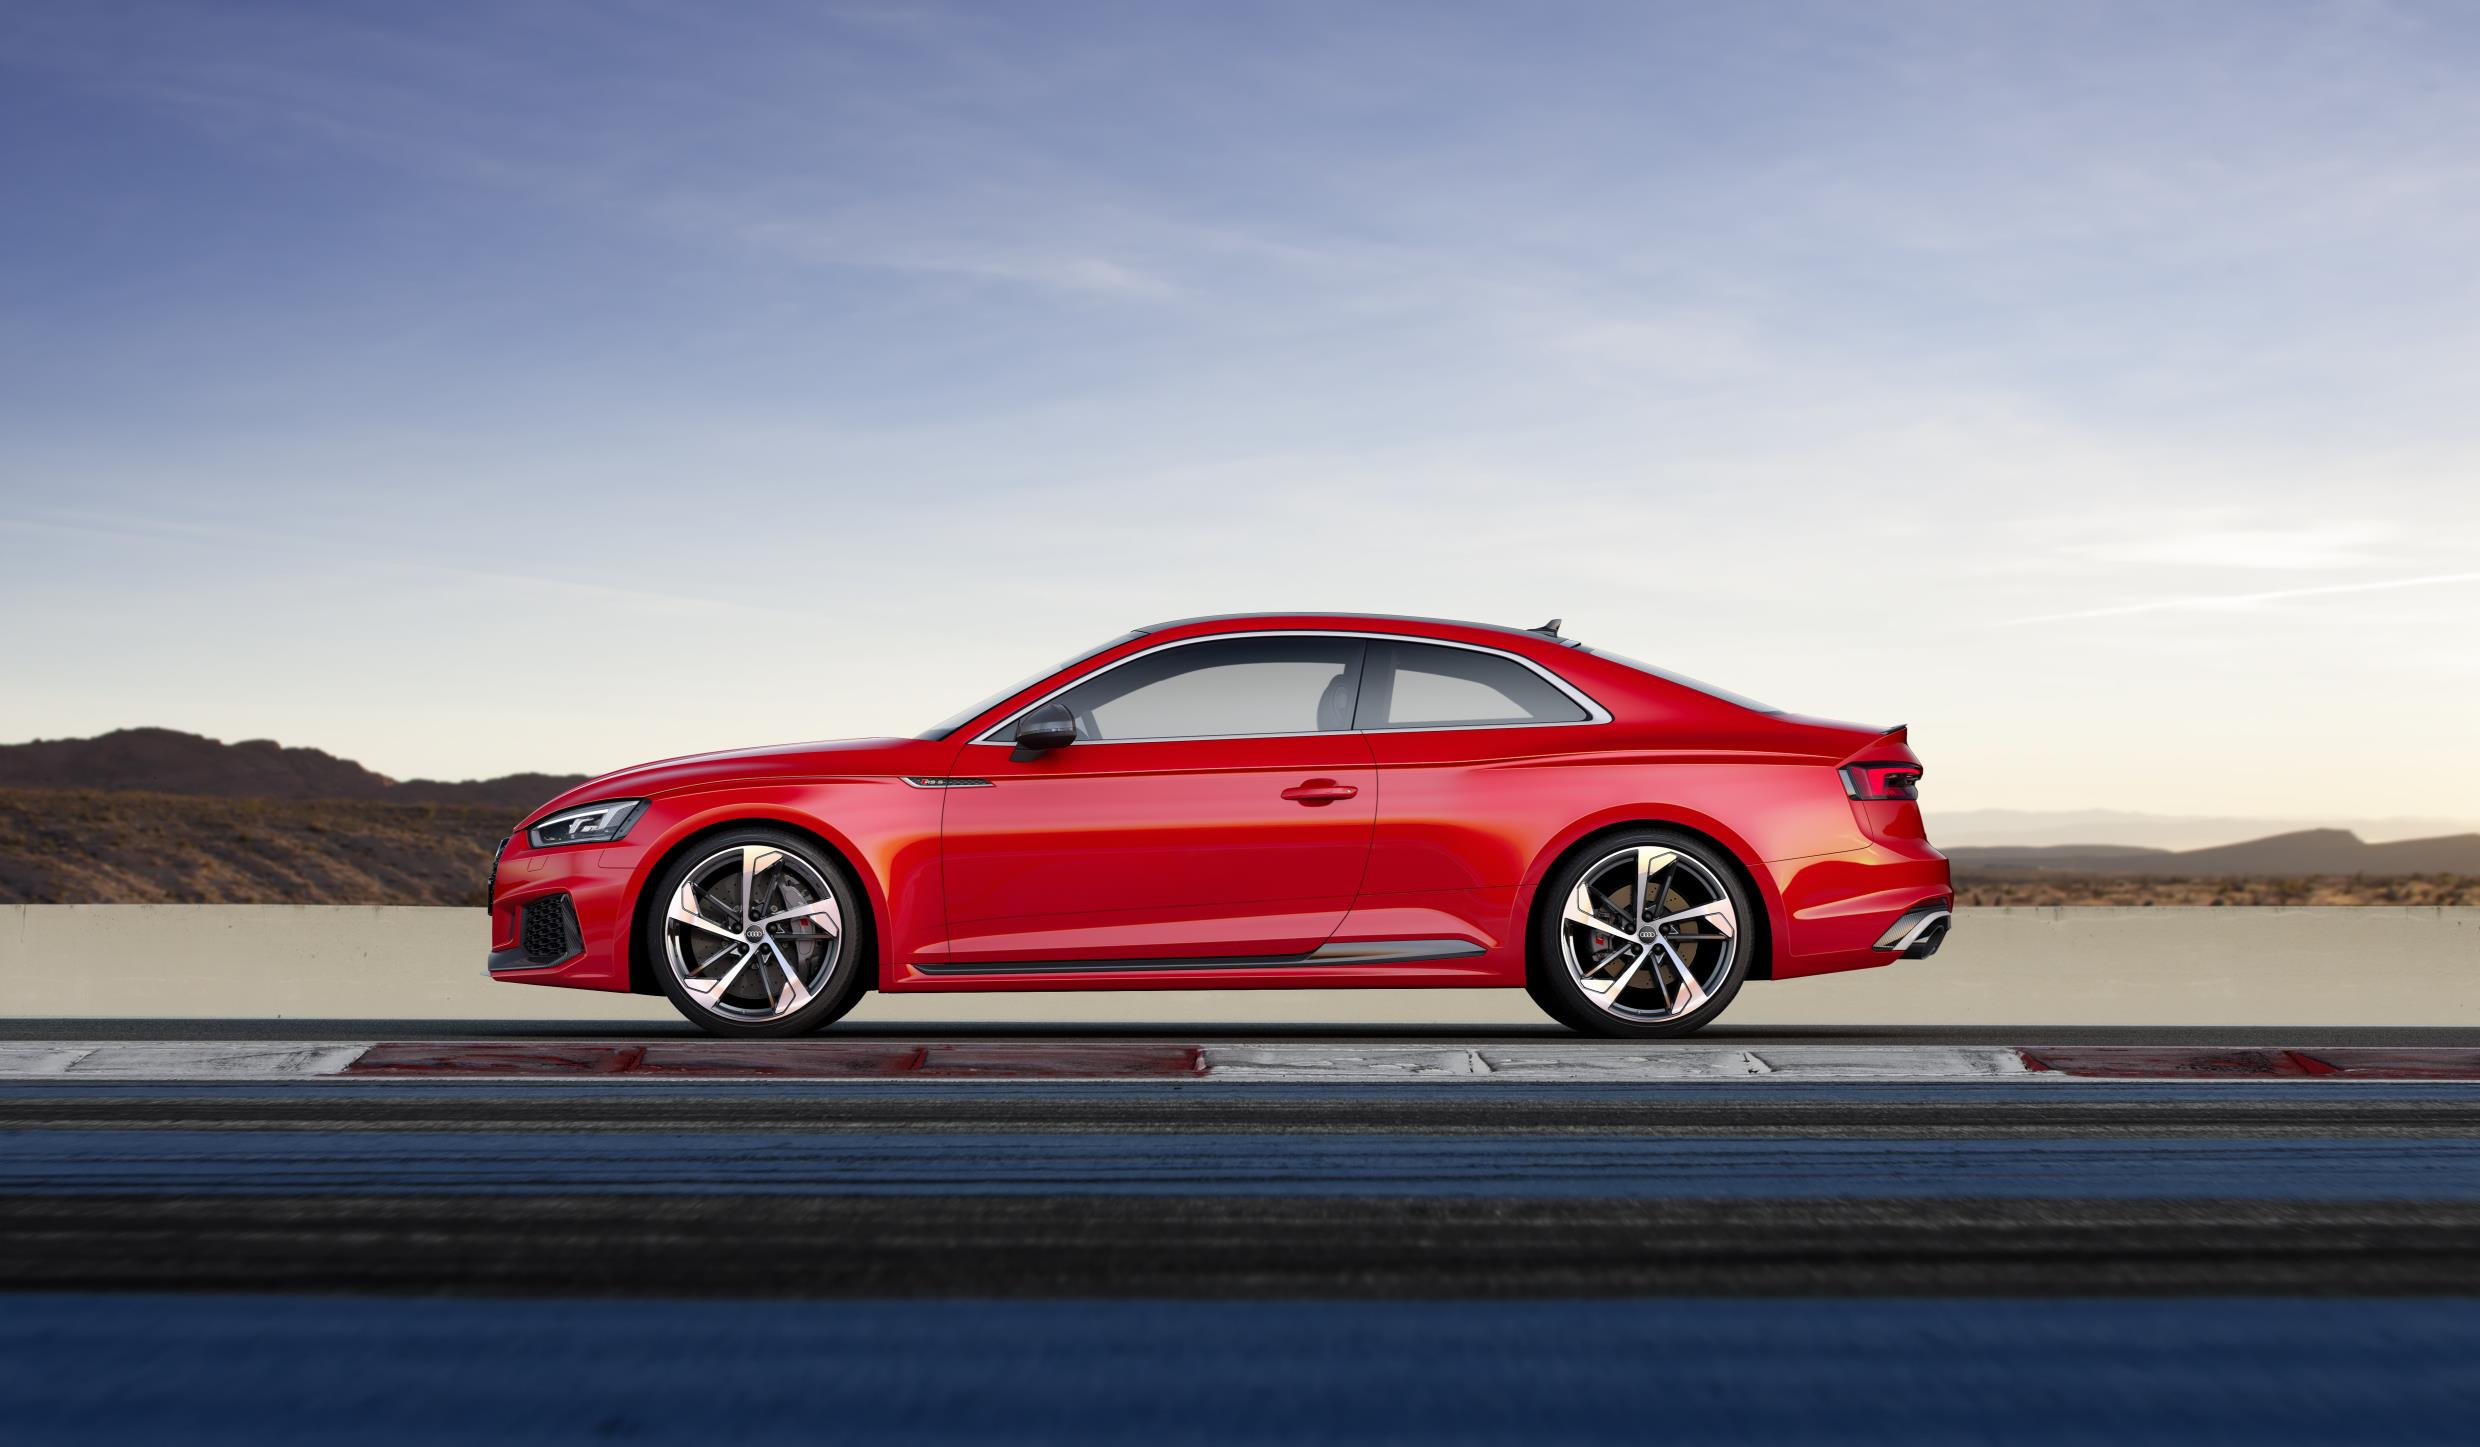 2019 Audi Rs5 Sportback Confirmed Its Coming To The Us